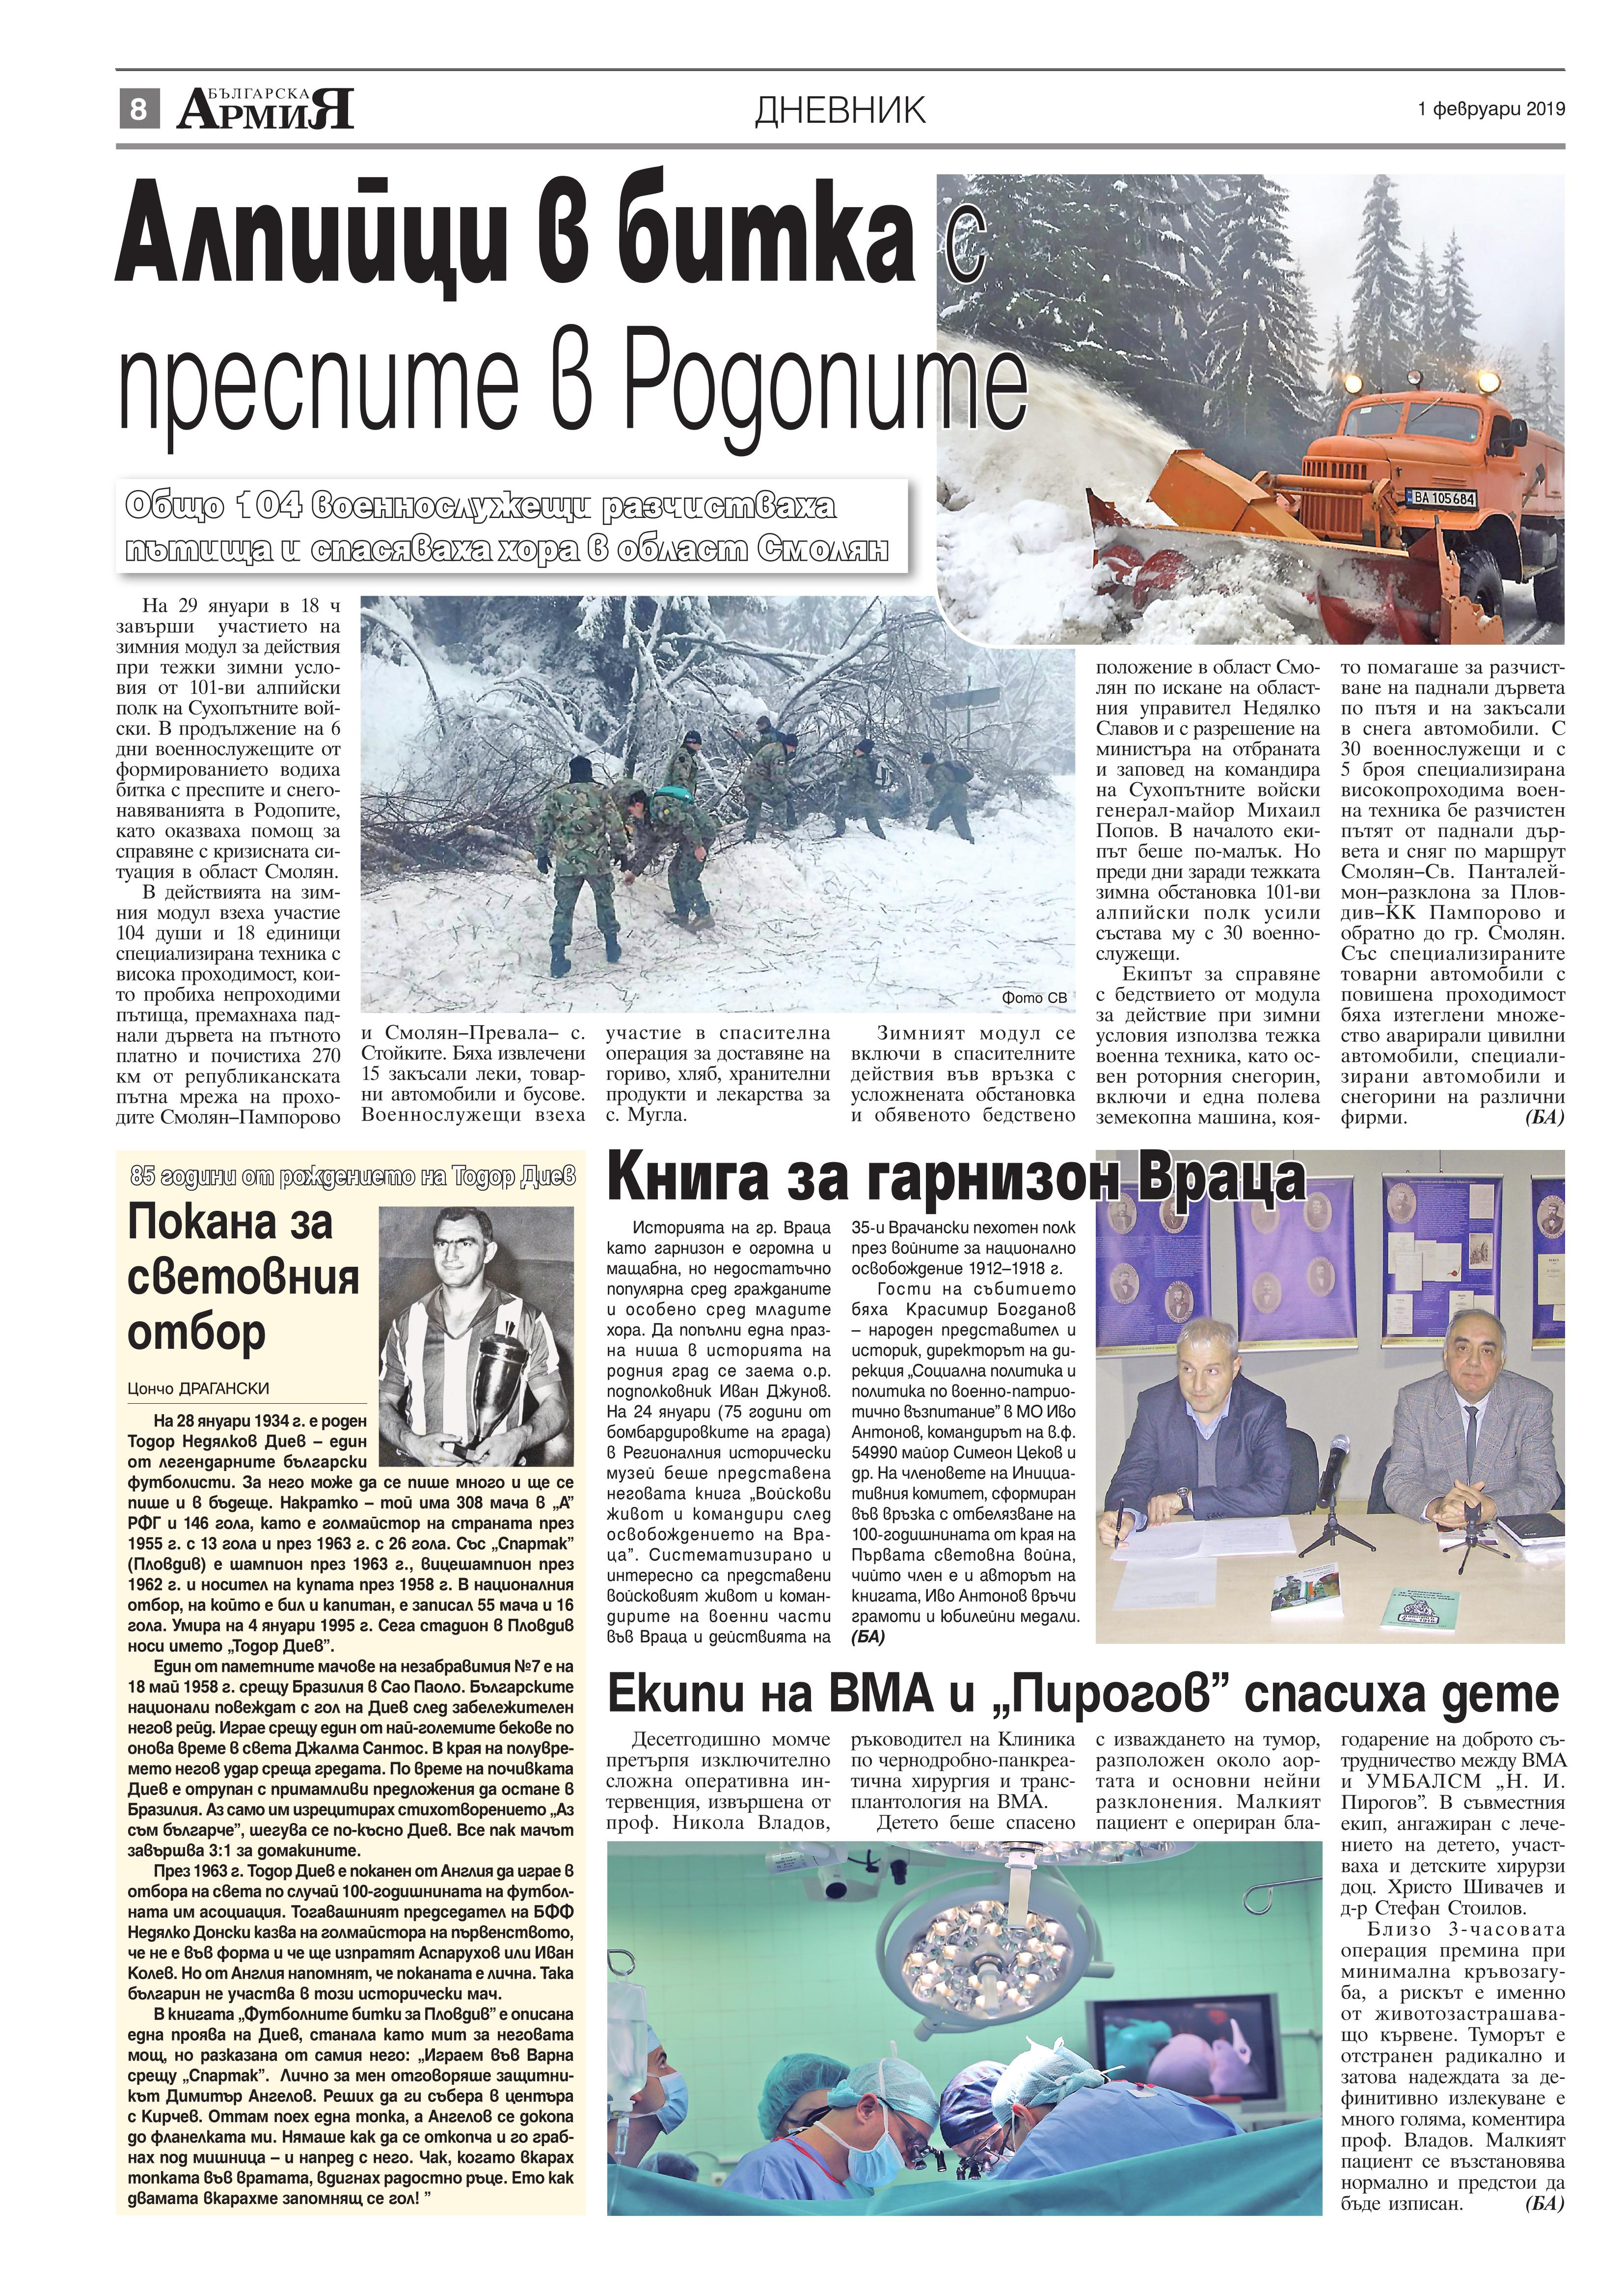 https://armymedia.bg/wp-content/uploads/2015/06/08.page1_-79.jpg